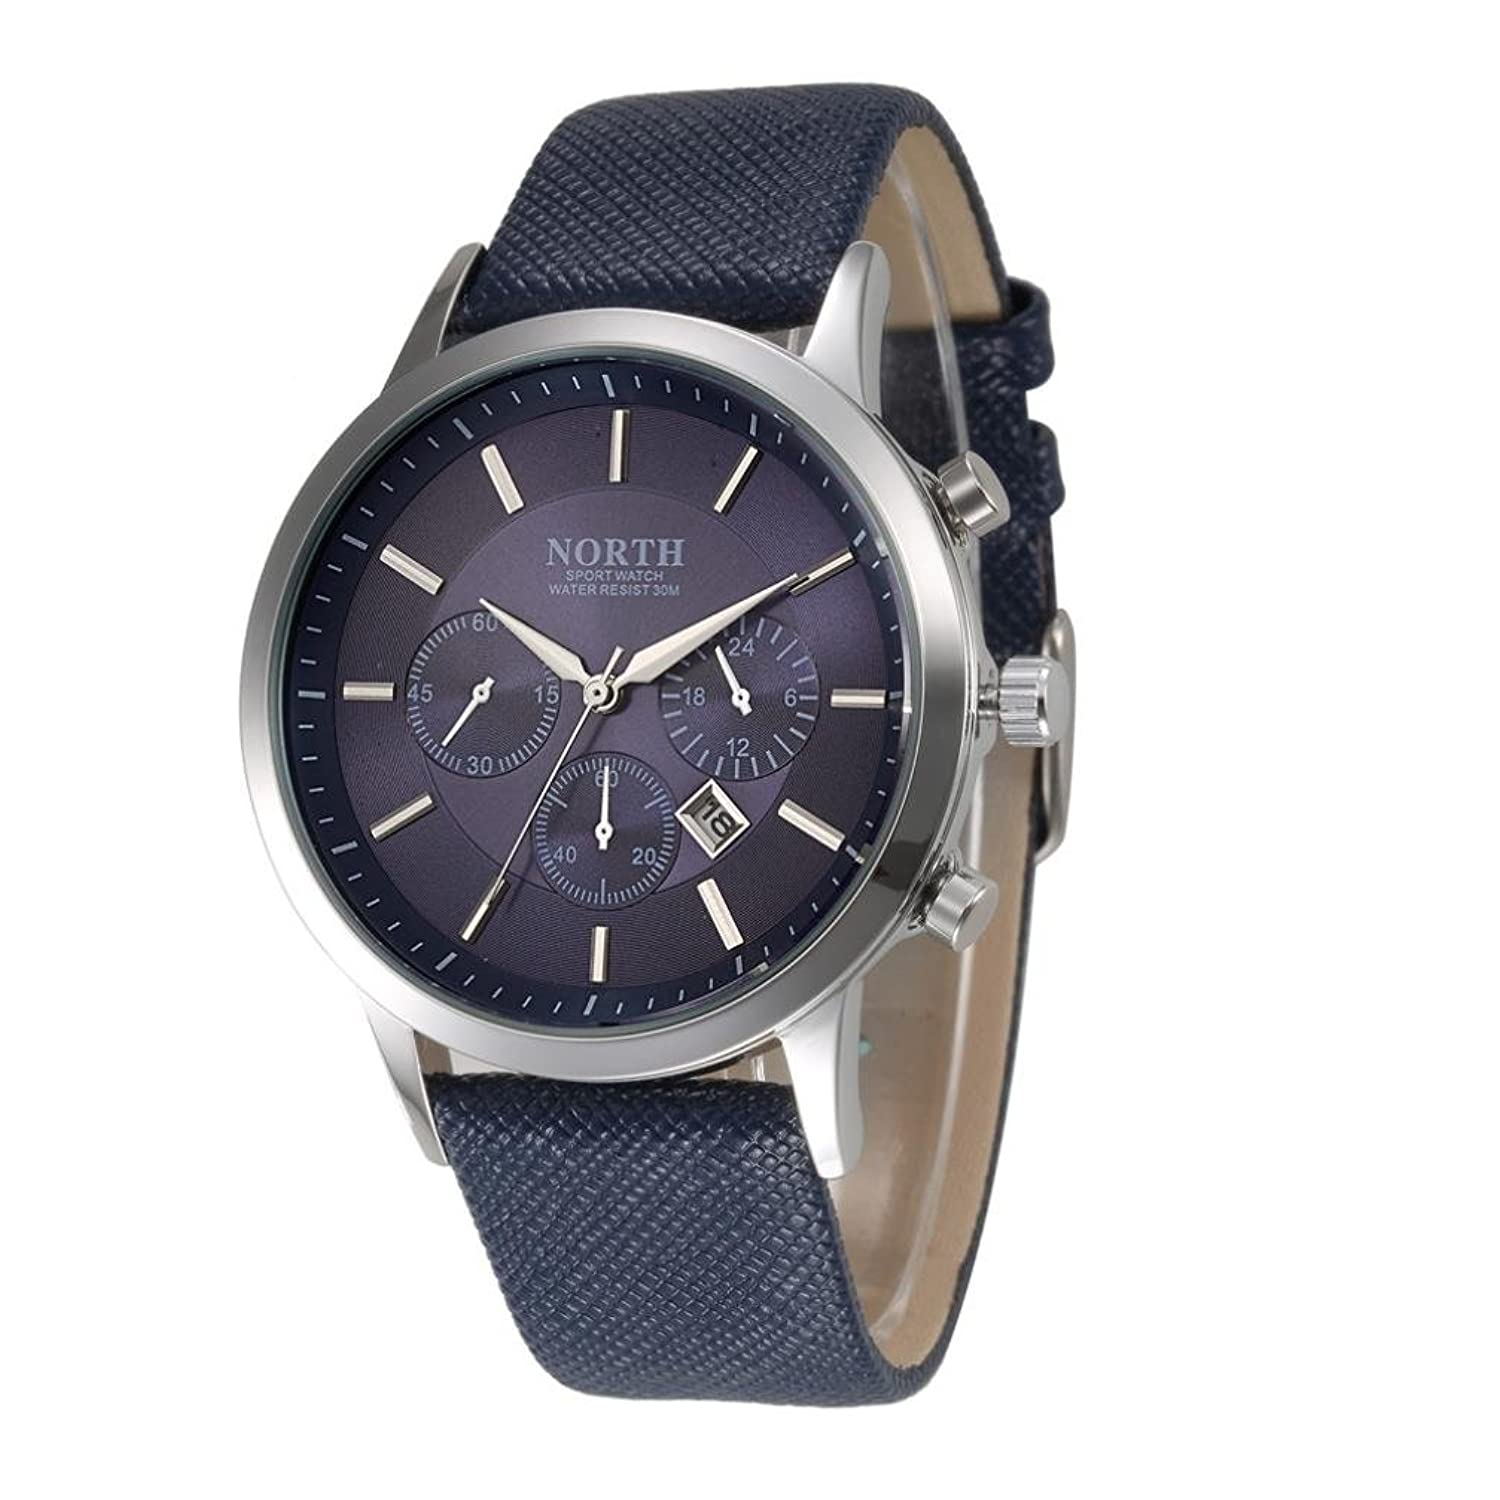 Amazon.com: NORTH Sports Luxury Mens Genuine Leather Band Analog Quartz Watches Wrist Watch Blue: Watches